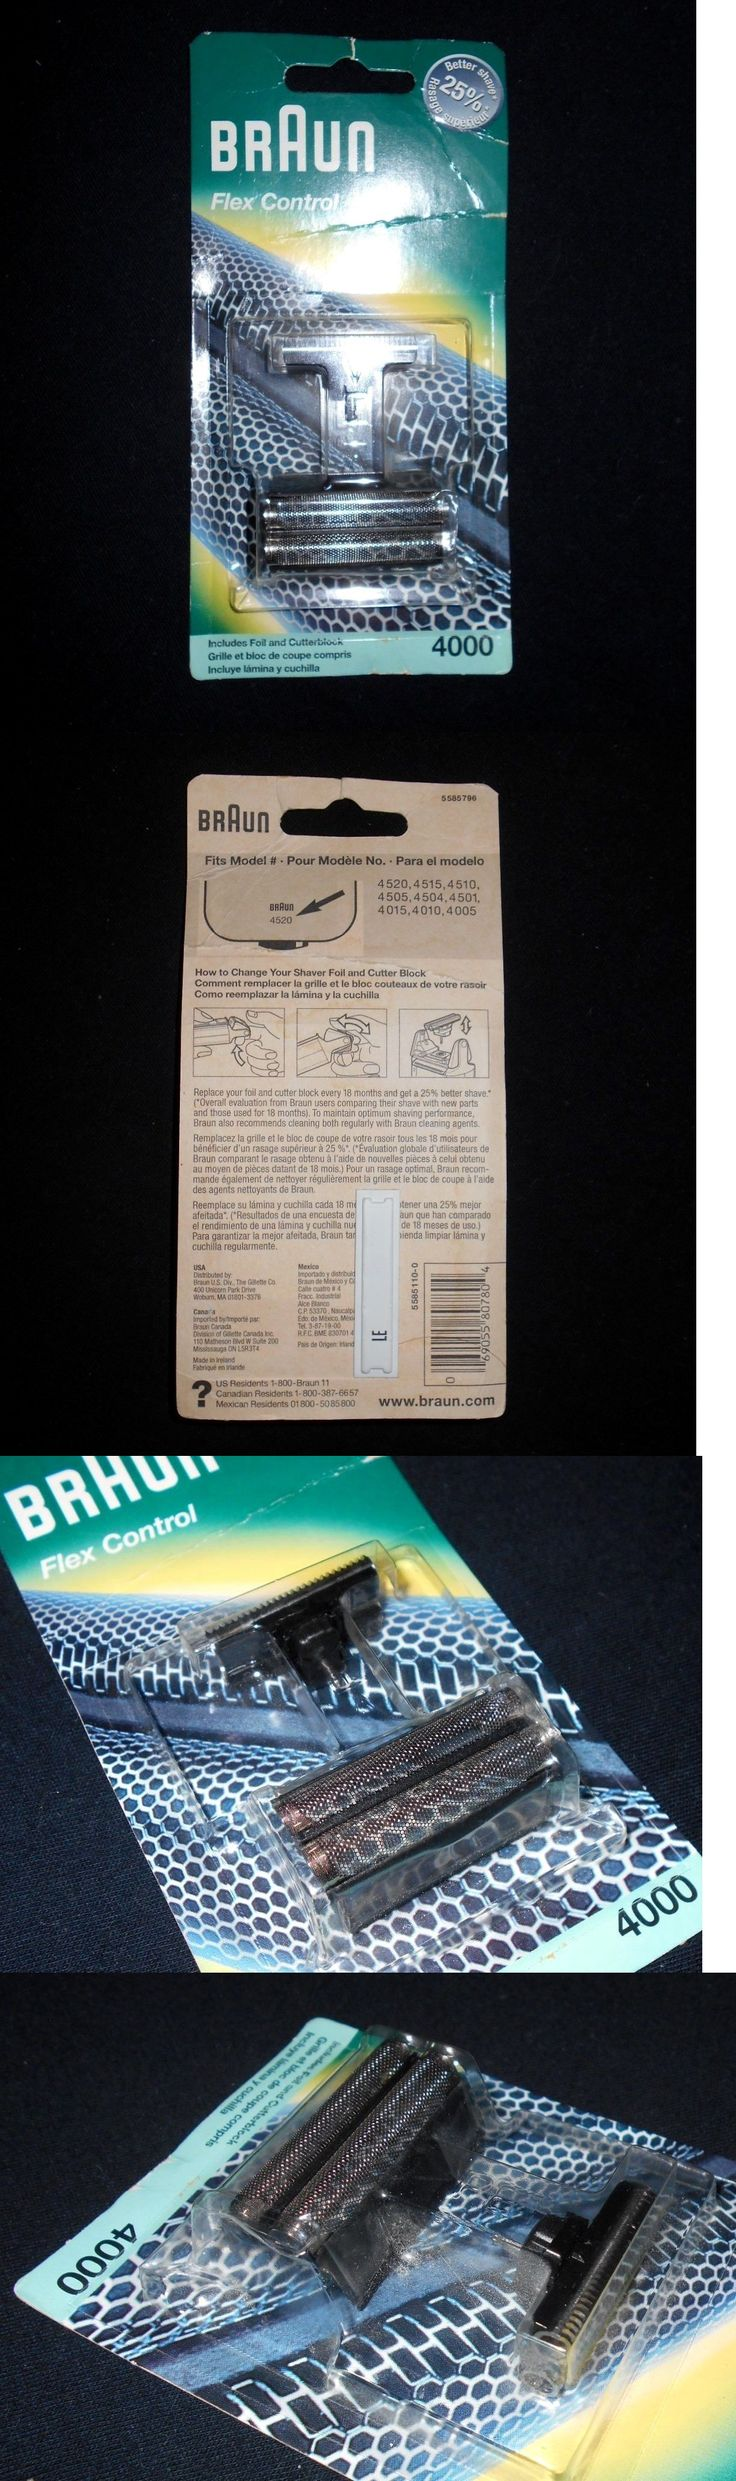 Shaver Parts and Accessories: Older Braun Series 4000 Flex Control Men Shaver Replacement Foil Cutter Old-New -> BUY IT NOW ONLY: $37 on eBay!